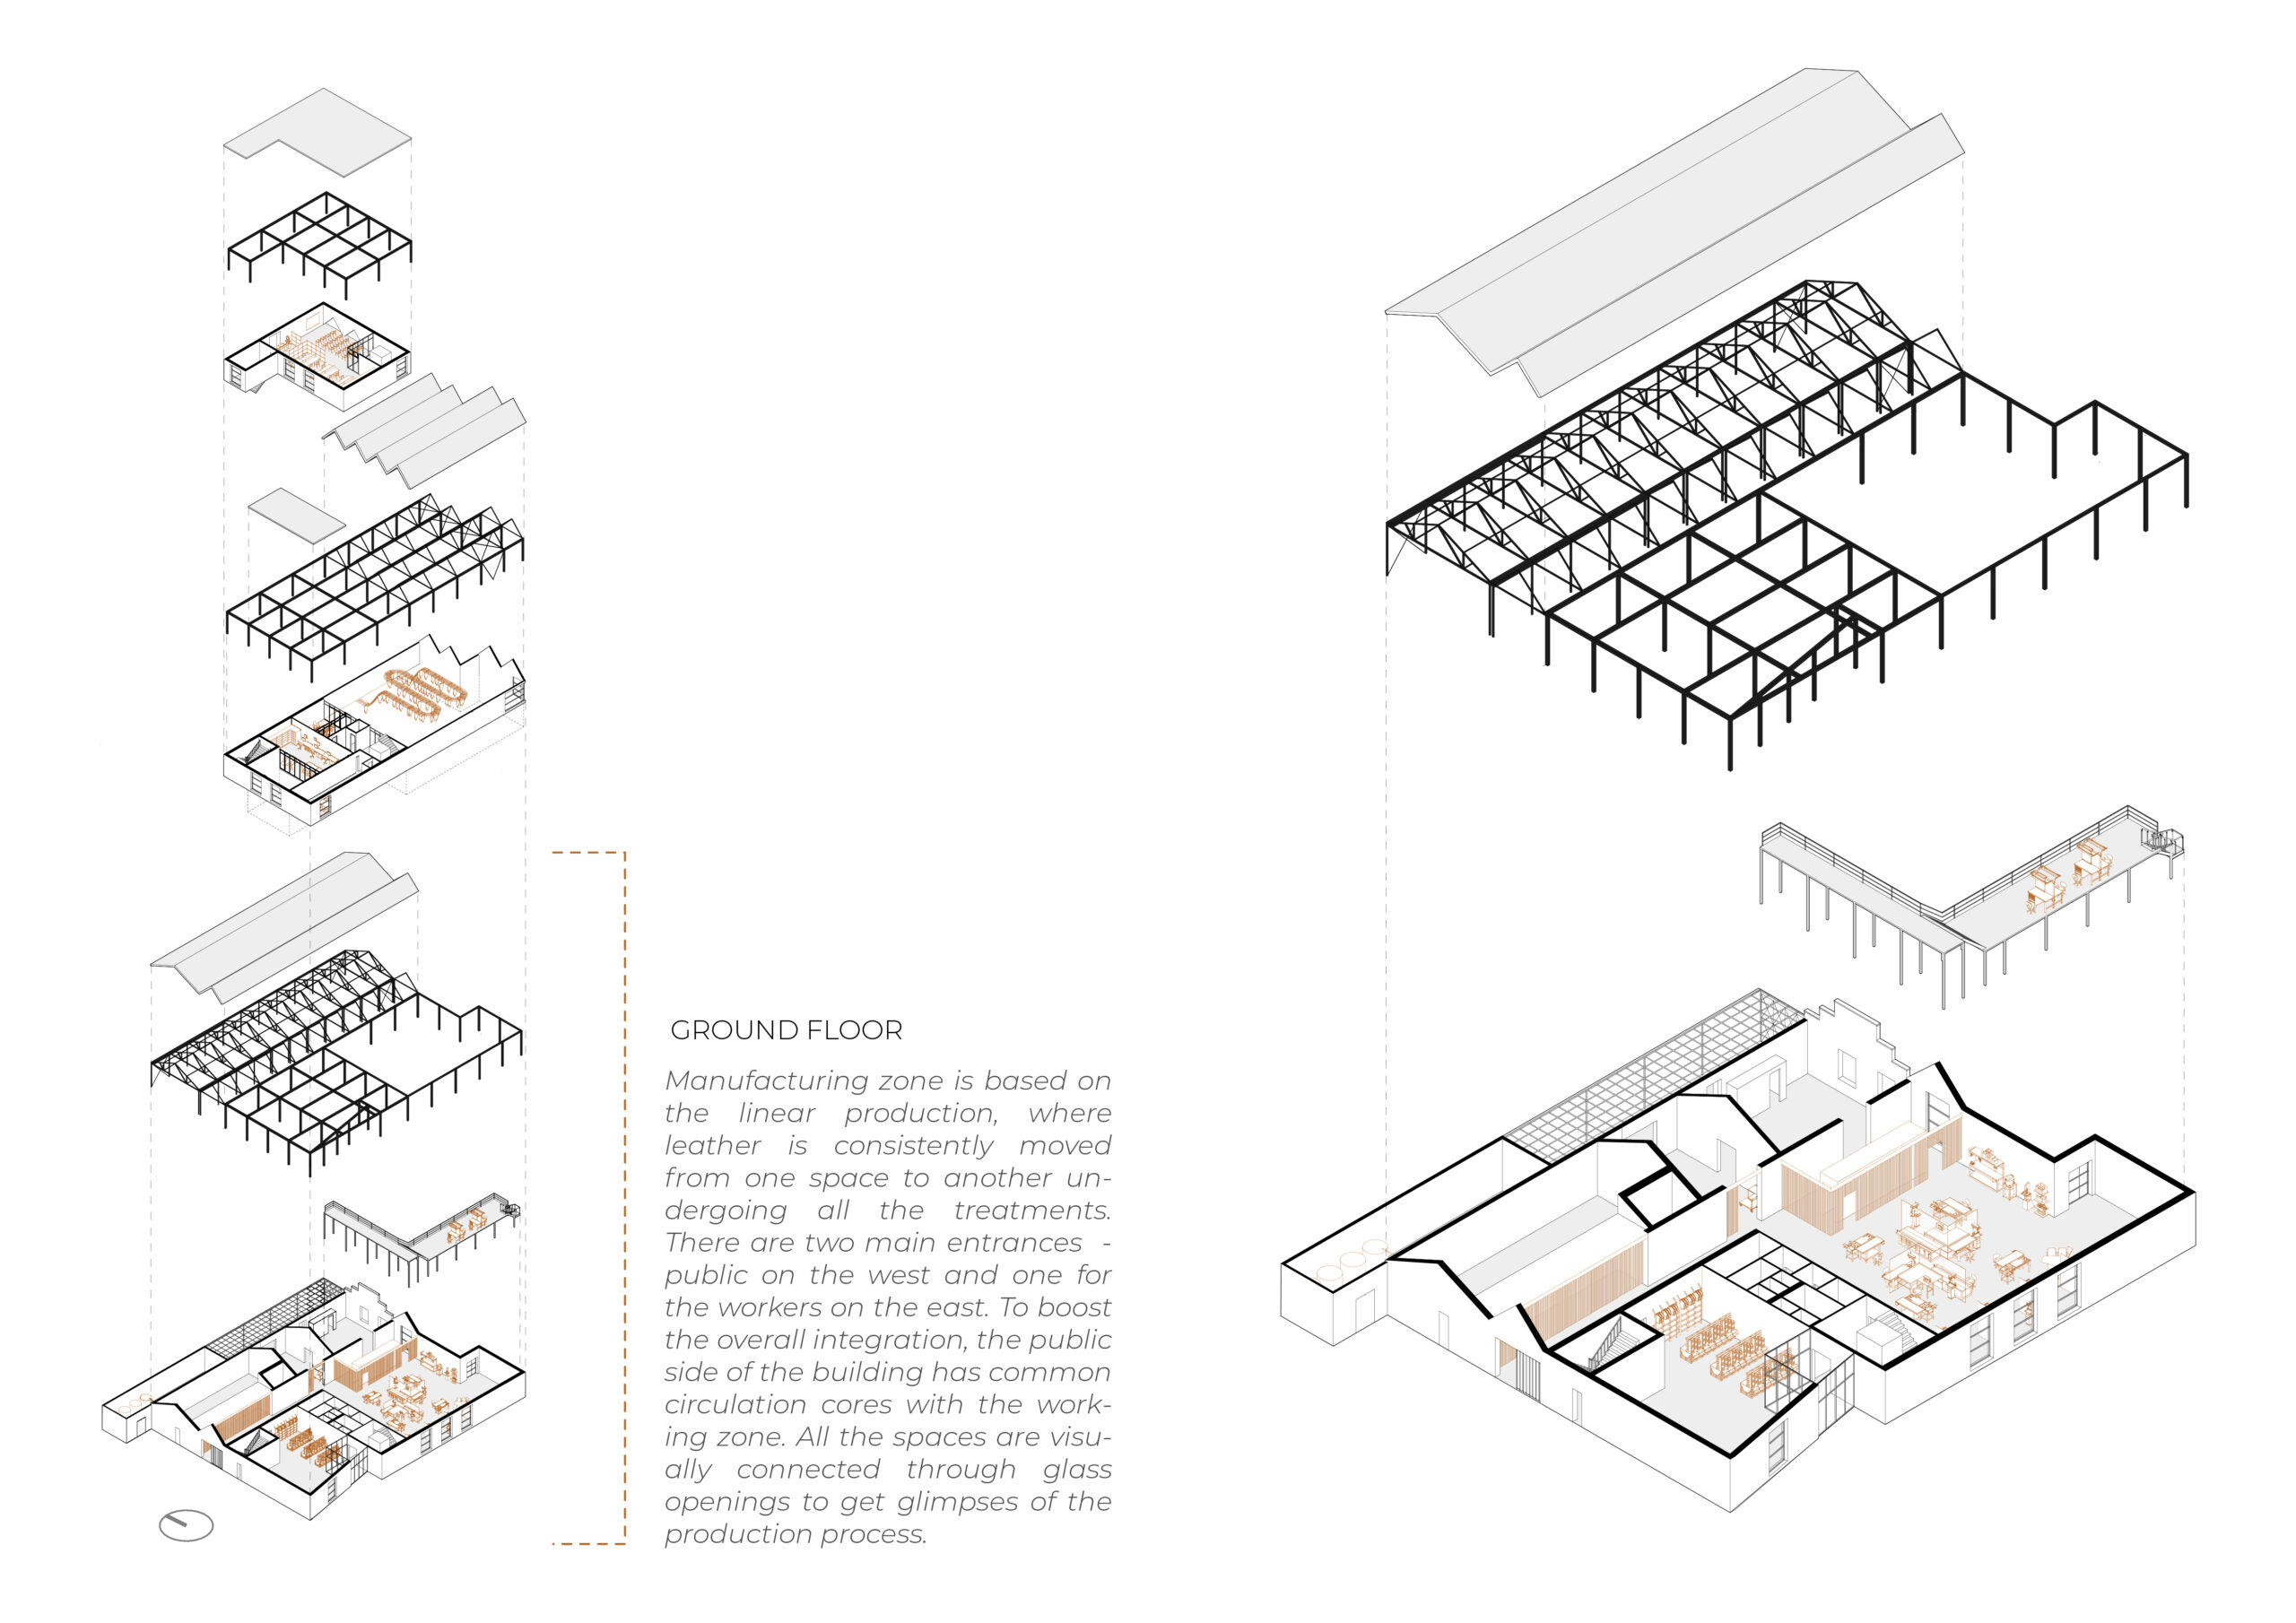 an axonometric drawing showing the activity and structure in each level of the leather works